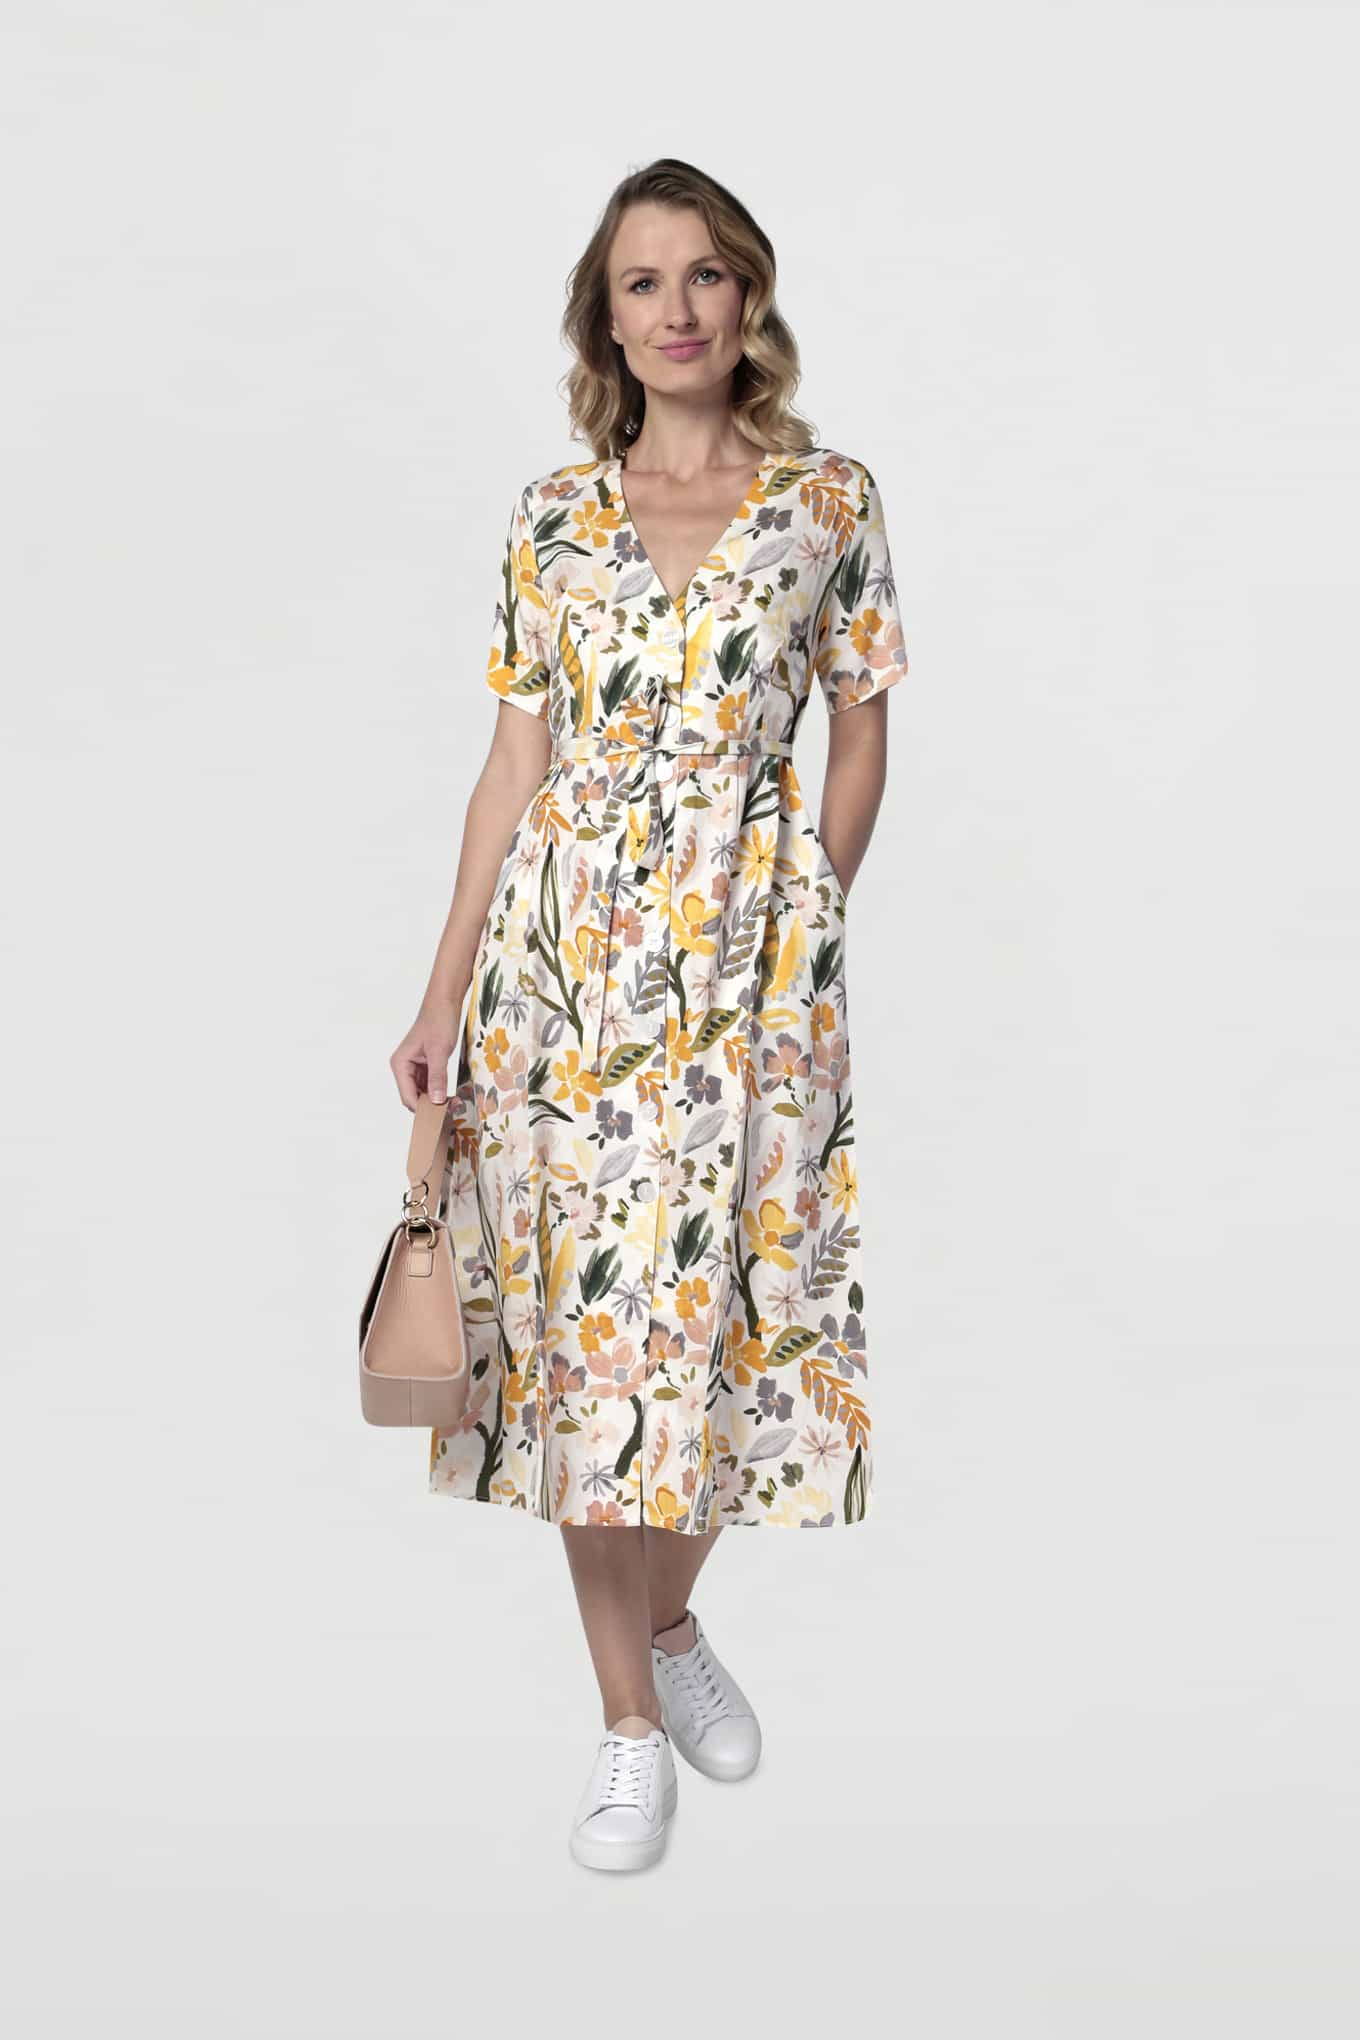 Dress Print Fantasy Woman